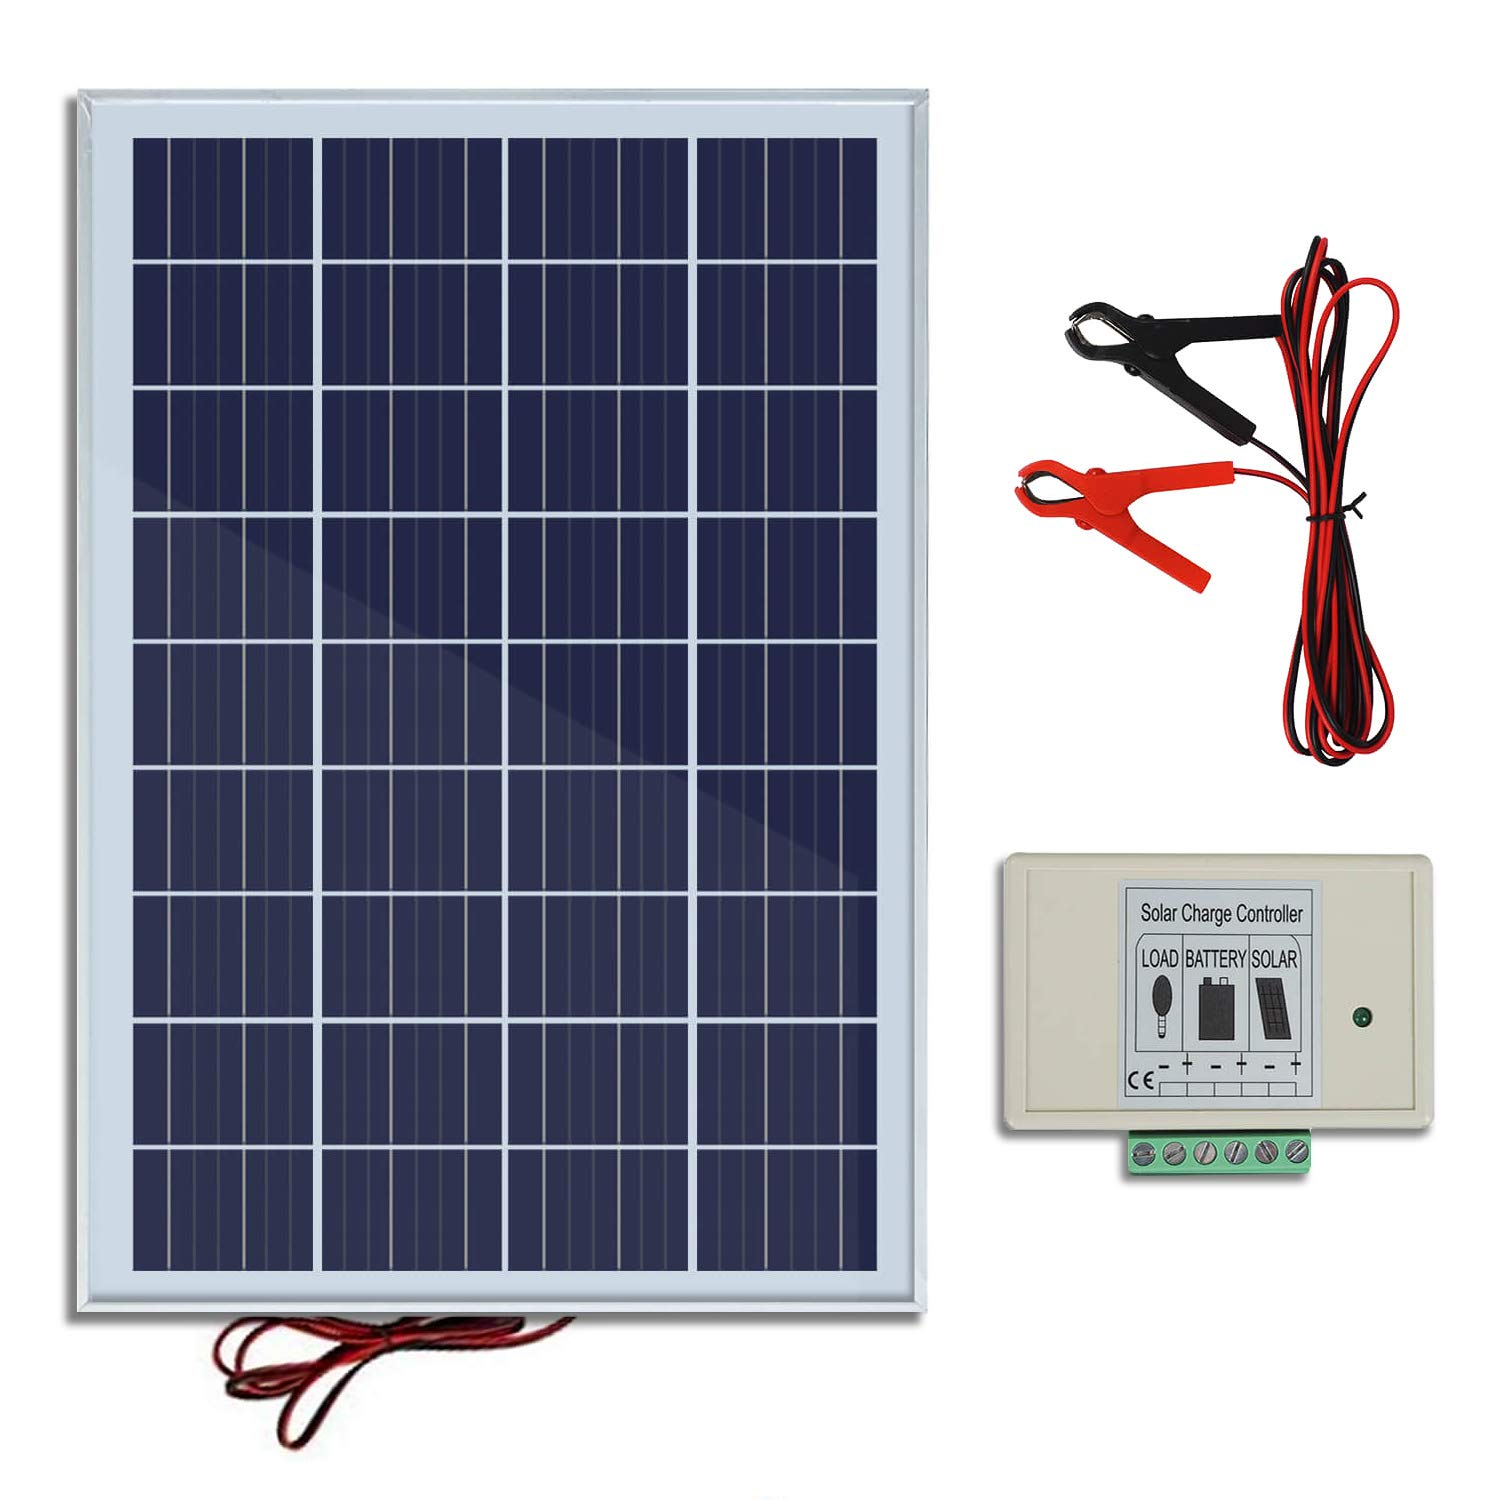 ECO-WORTHY 20W 12V Solar Panel Kit: 20 Watt Polycrystalline Solar Panel & Battery Clips & 3A Charge Controller for Battery Charging product image